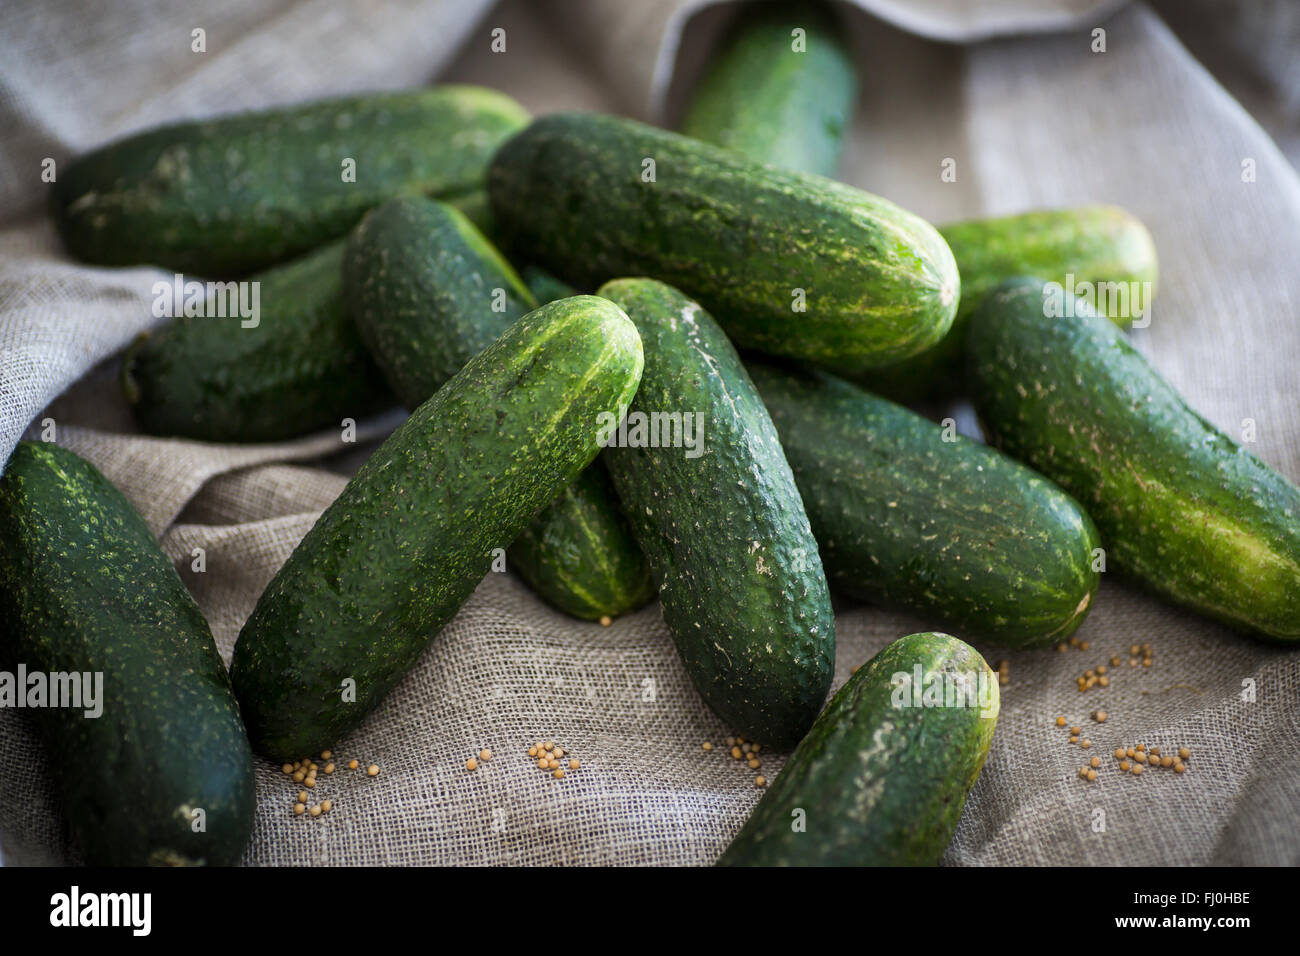 Cucumbers as an ingredient for pickles - Stock Image